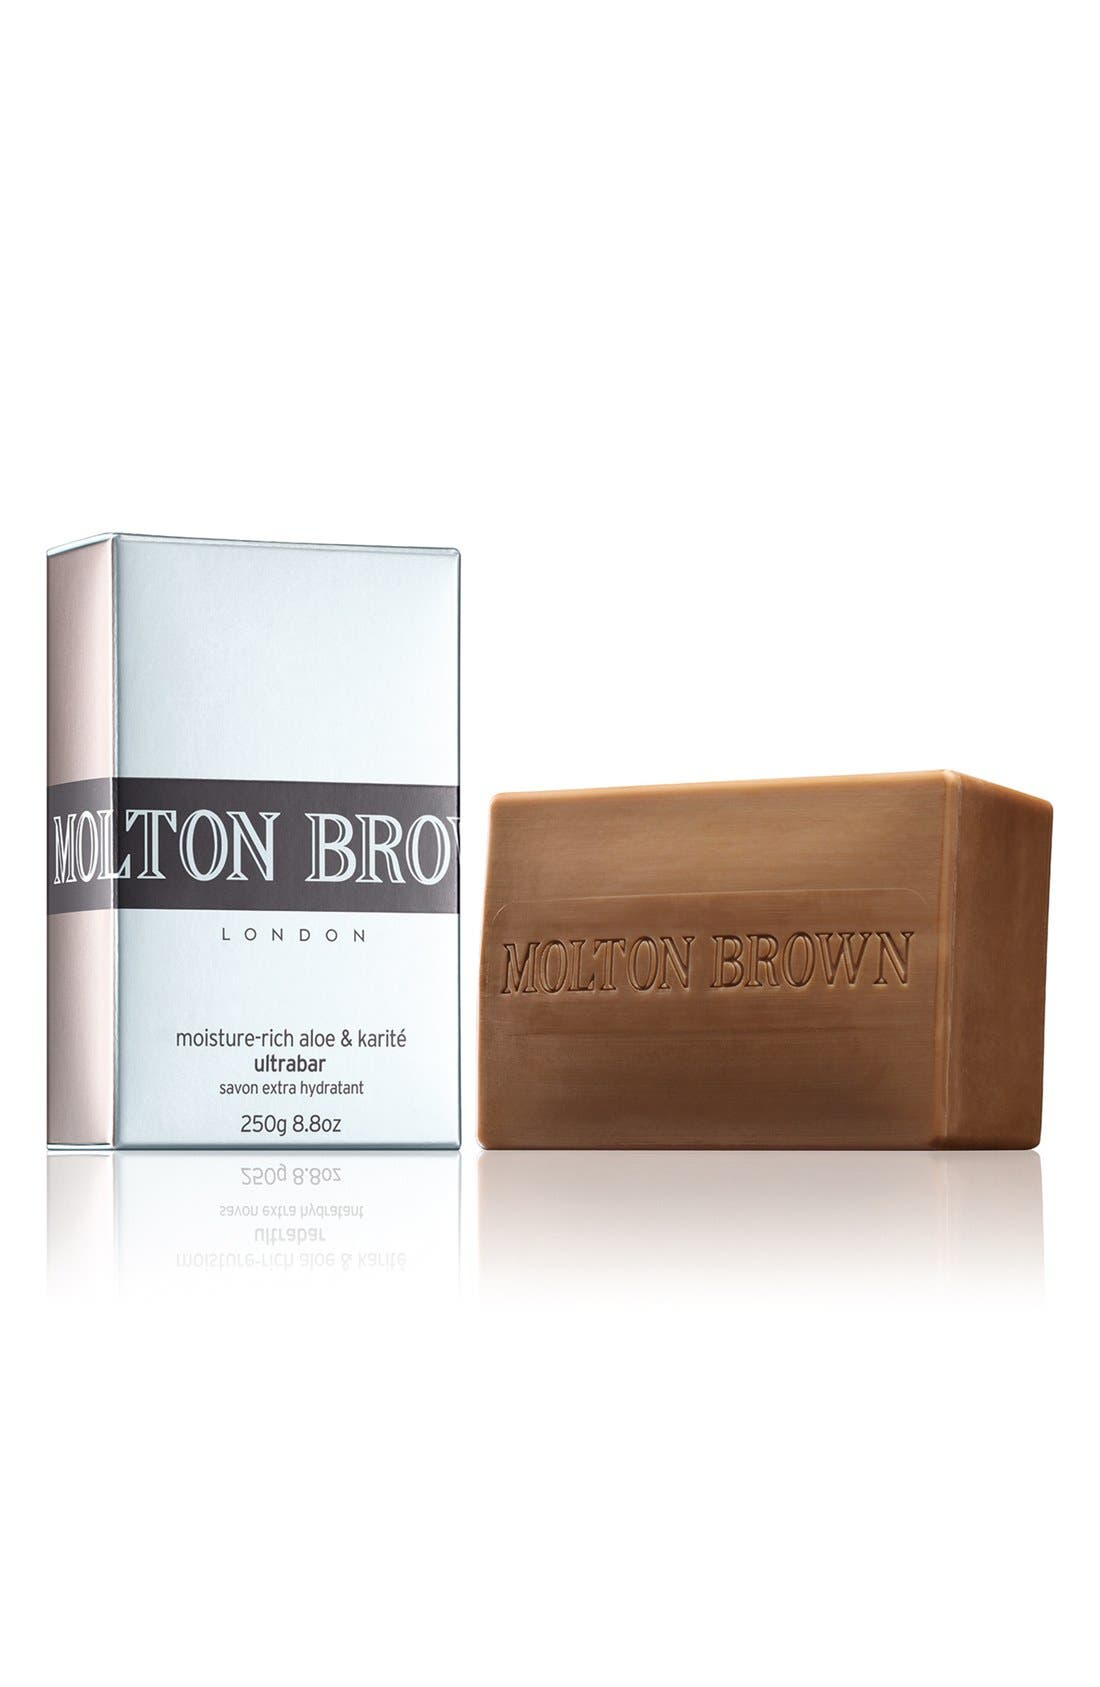 MOLTON BROWN London Moisture Rich Aloe & Karite Ultrabar